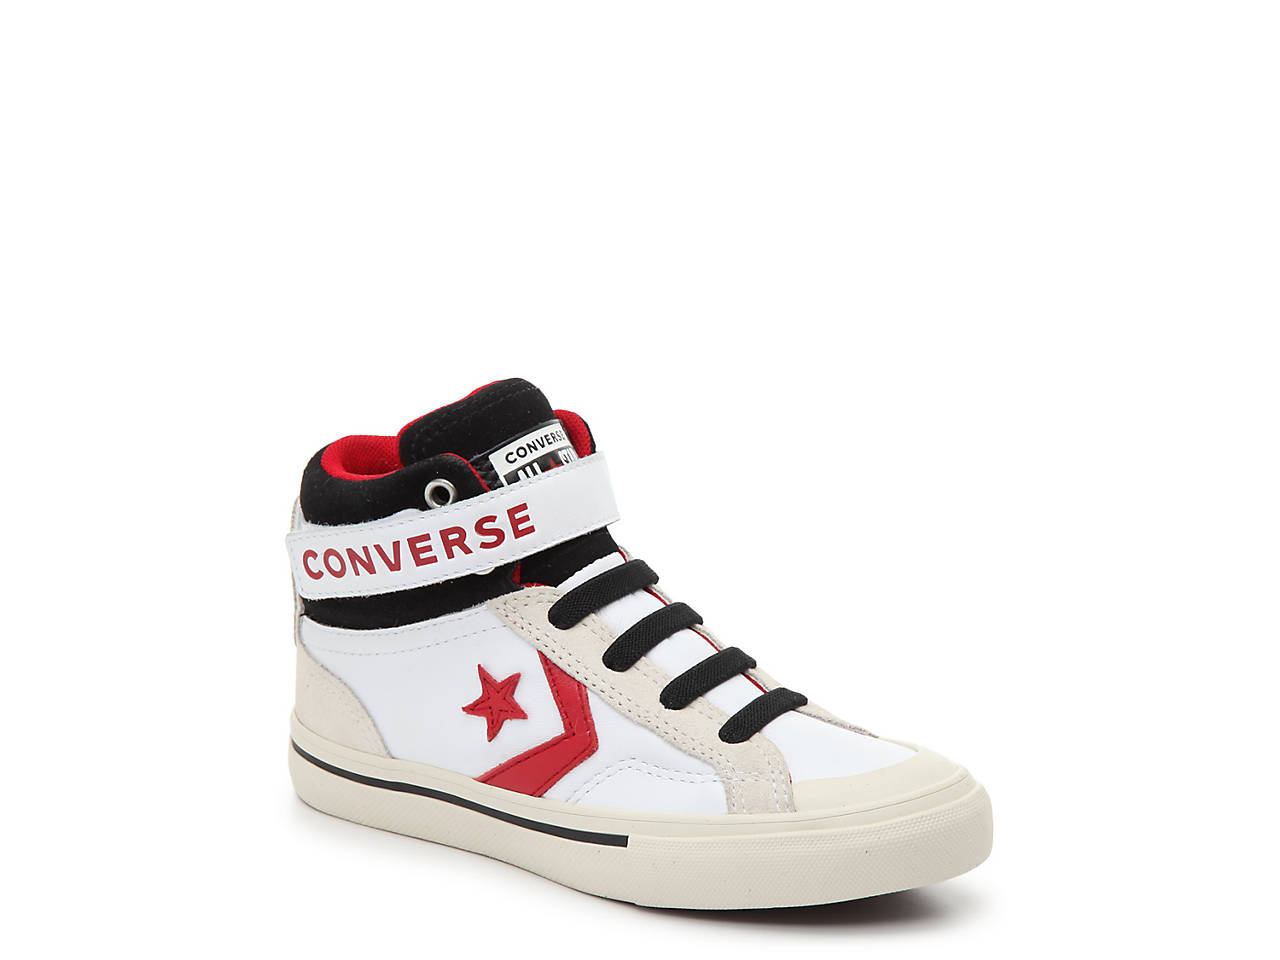 face762c929f Converse Chuck Taylor All Star Pro Blaze Toddler   Youth High-Top Sneaker  Kids Shoes